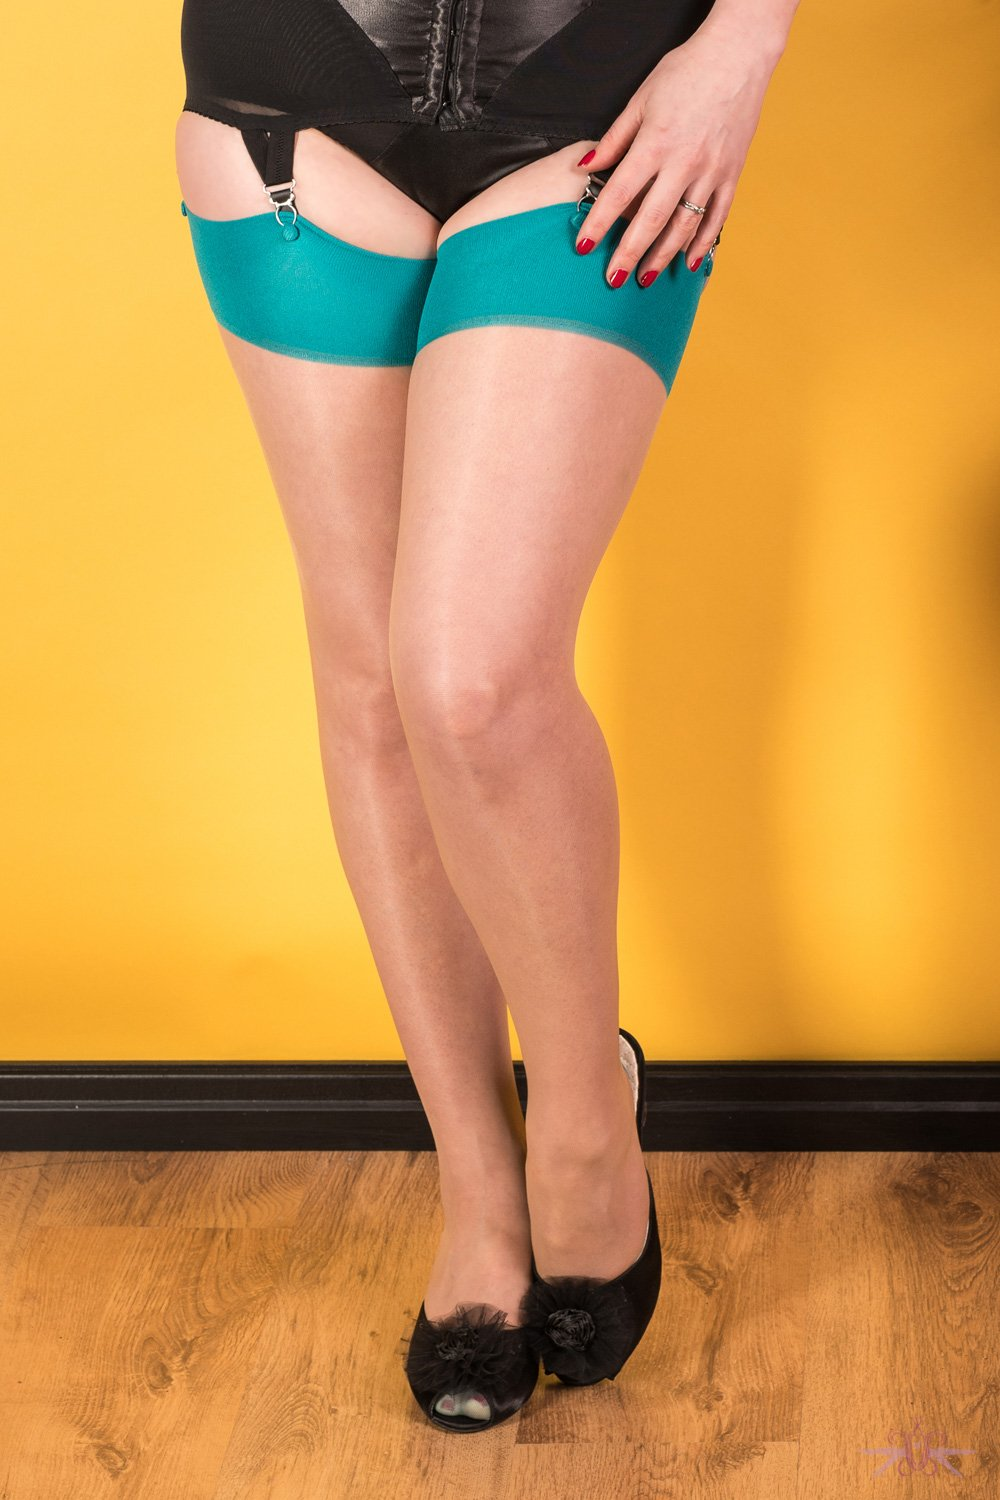 What Katie Did Contrast Nude/Teal Seamed Stockings - The Hosiery Box